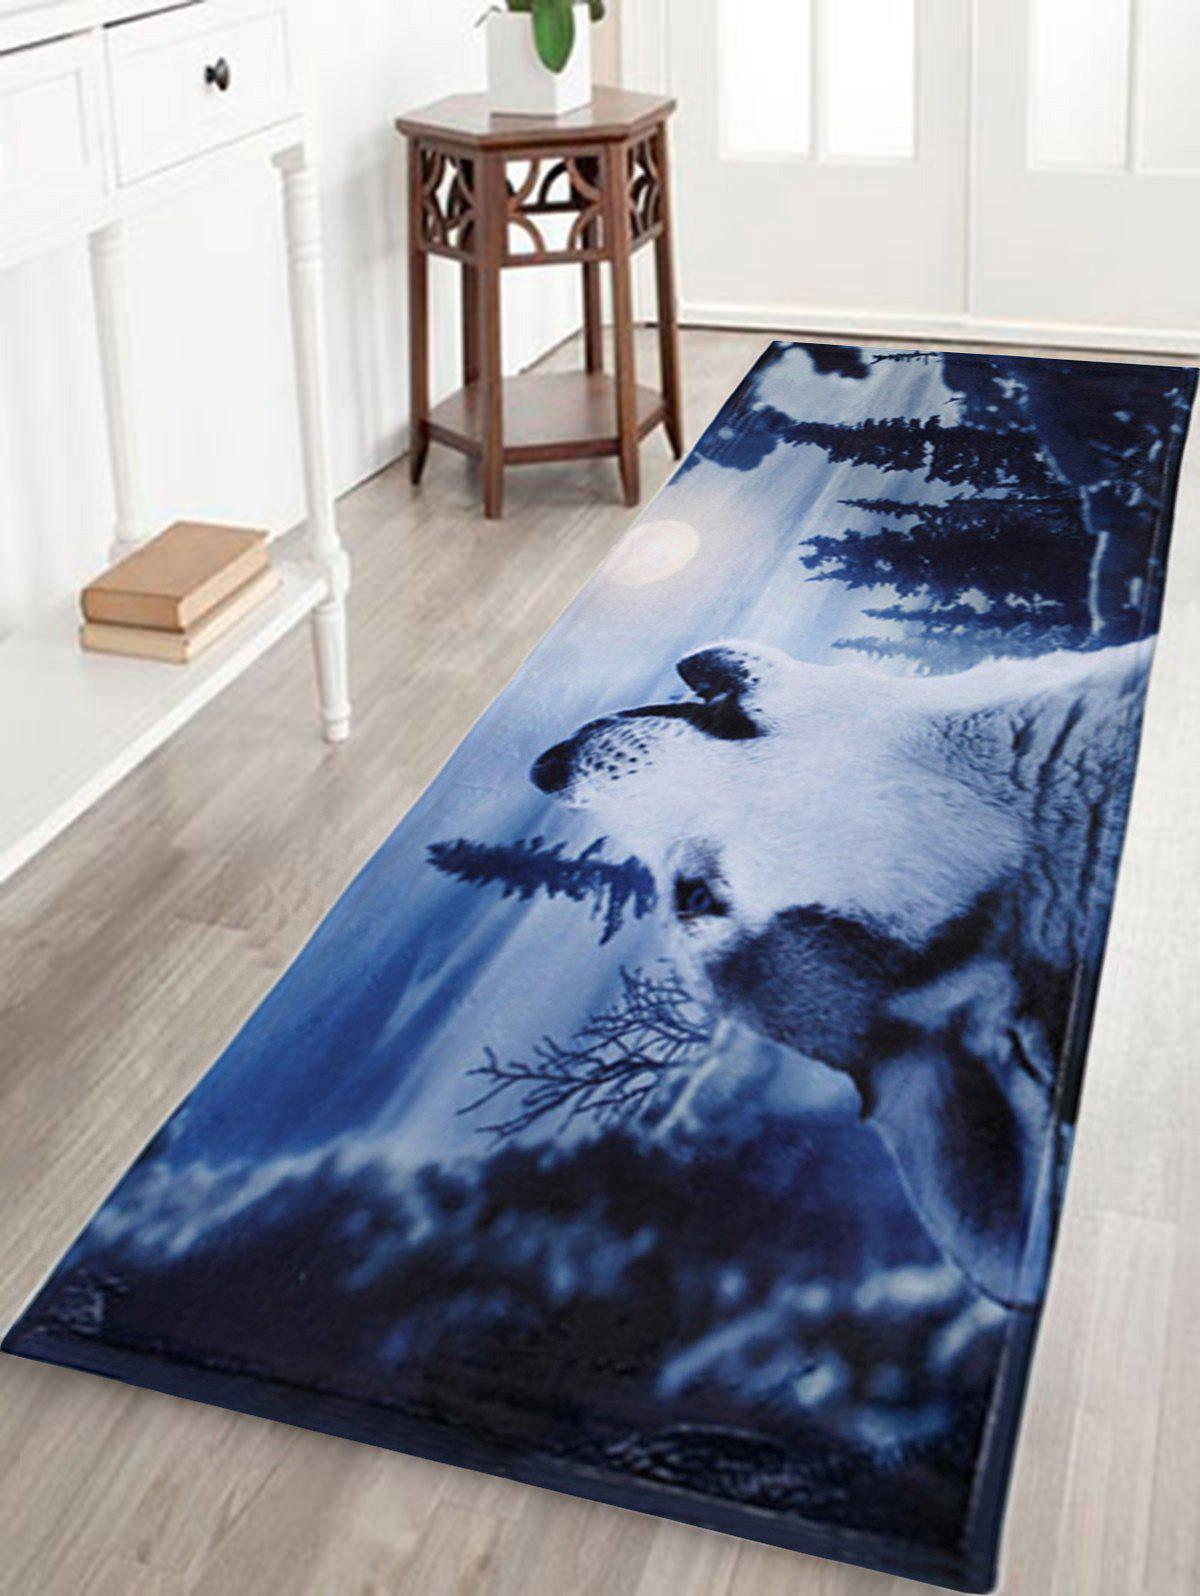 Water Absorbent Snow Wolf Coral Fleece Floor MatHOME<br><br>Size: W24 INCH * L71 INCH; Color: MIDNIGHT; Products Type: Bath Mats; Materials: Coral FLeece; Pattern: Animal; Style: Trendy; Shape: Rectangle; Package Contents: 1 x Mat;